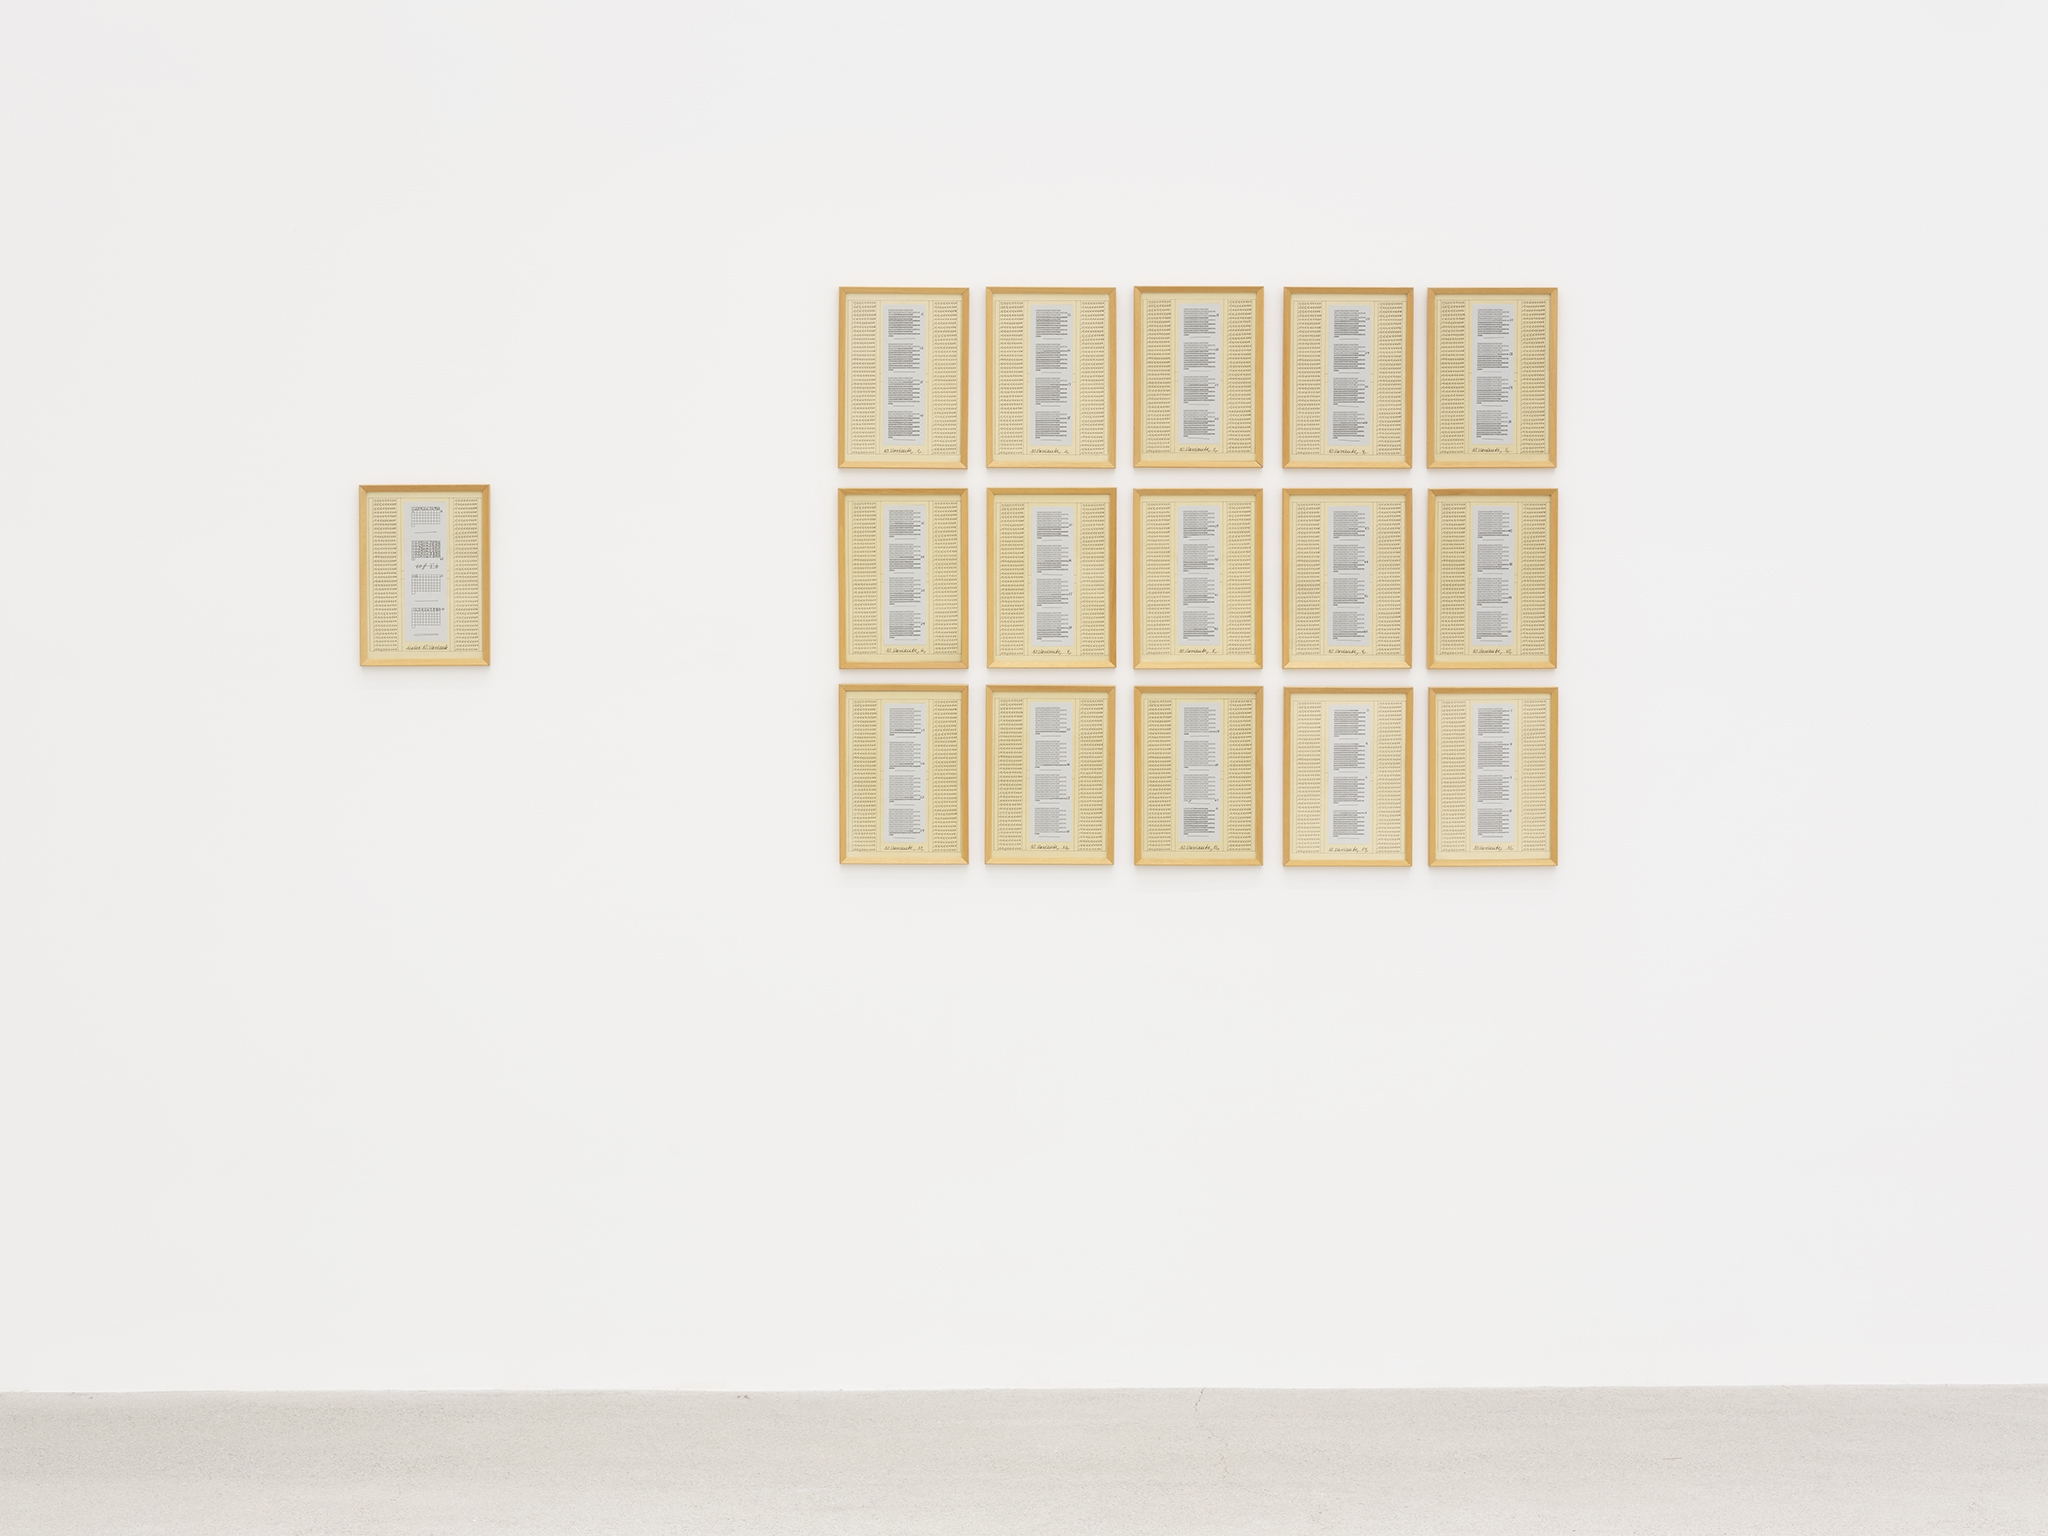 Hanne Darboven, 10. Variante, 1975, 15 parts and 1 index, ink, collage, silkscreen print on paper, each 11 x 8 in. (29 x 21 cm) by